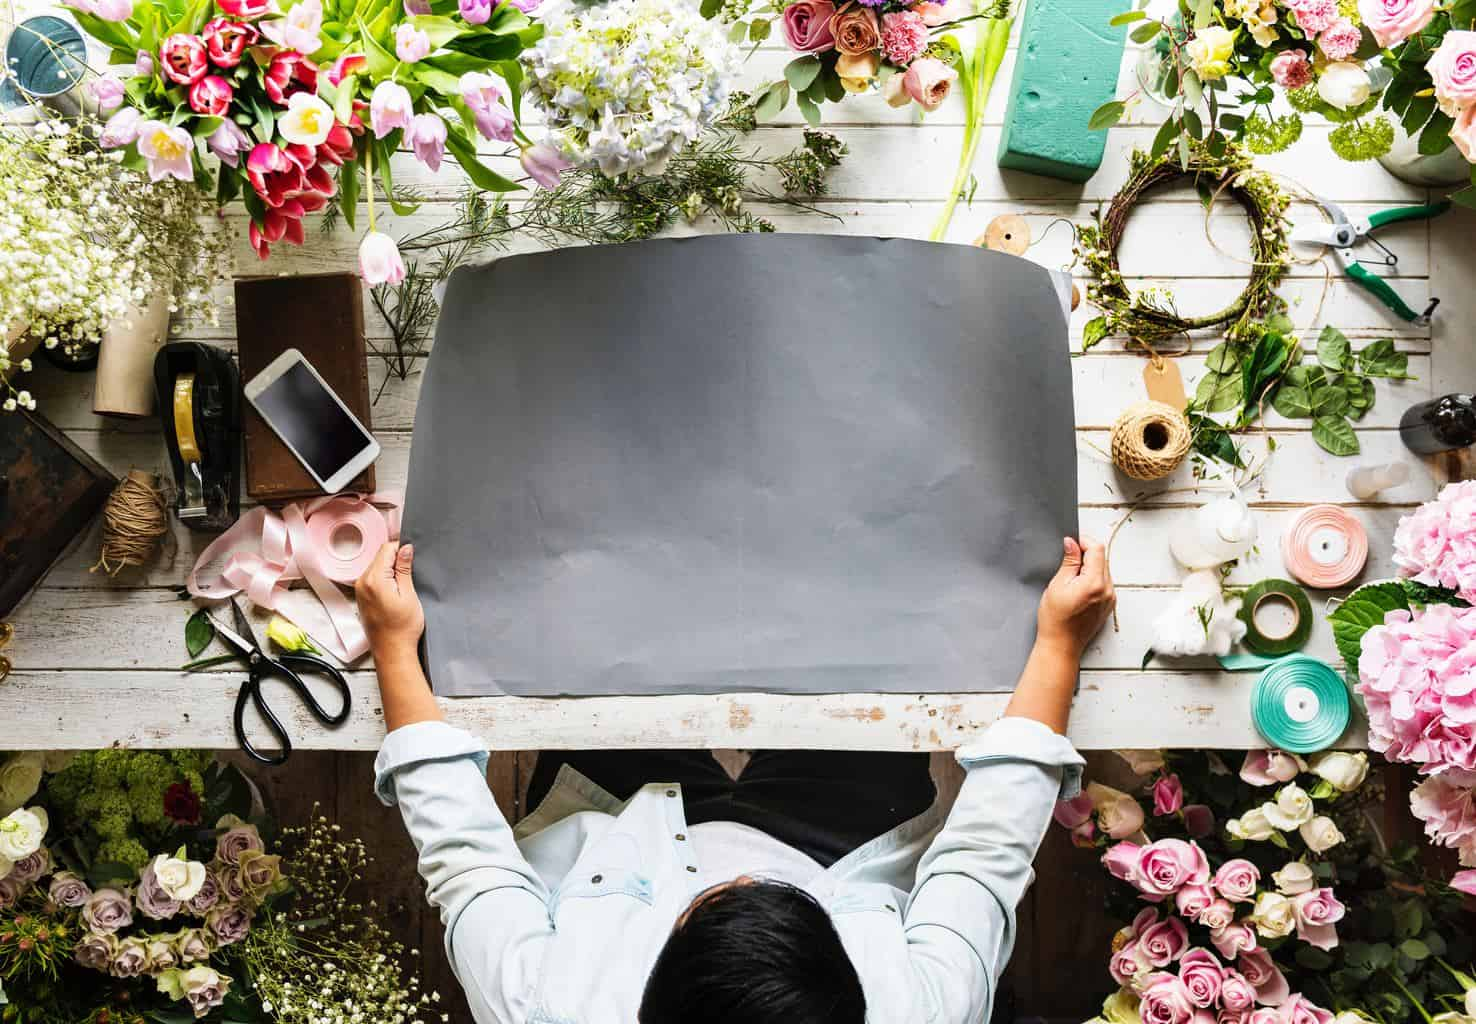 How To Turn a Hobby Into A Business - Business and Insurance Tips by Jason Lewis and LegalNet Inc